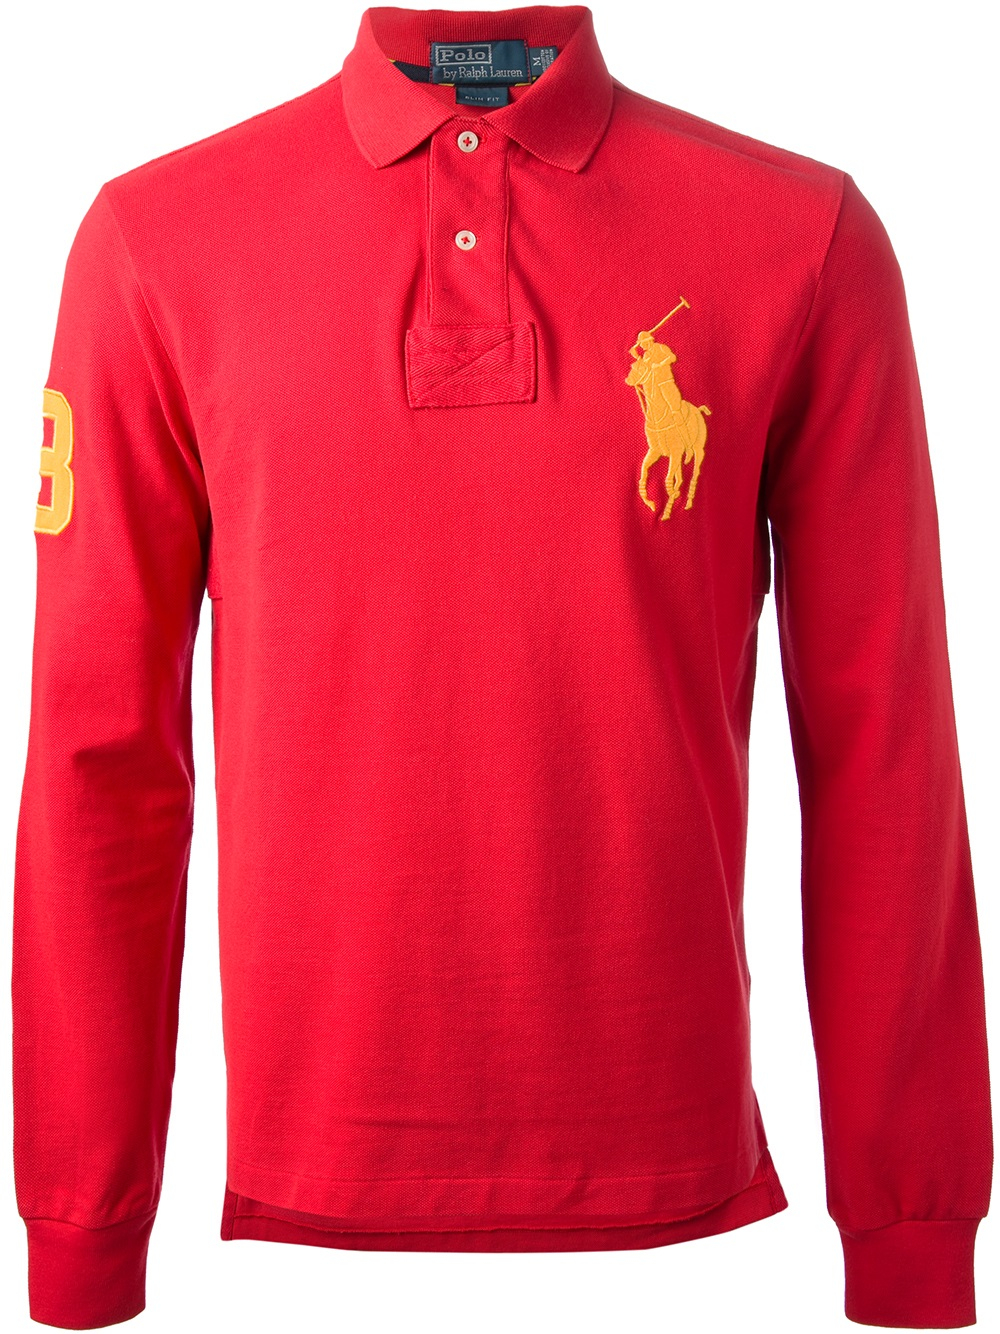 37048c382 Ralph Lauren Blue Label Big Pony Polo Shirt in Red for Men - Lyst